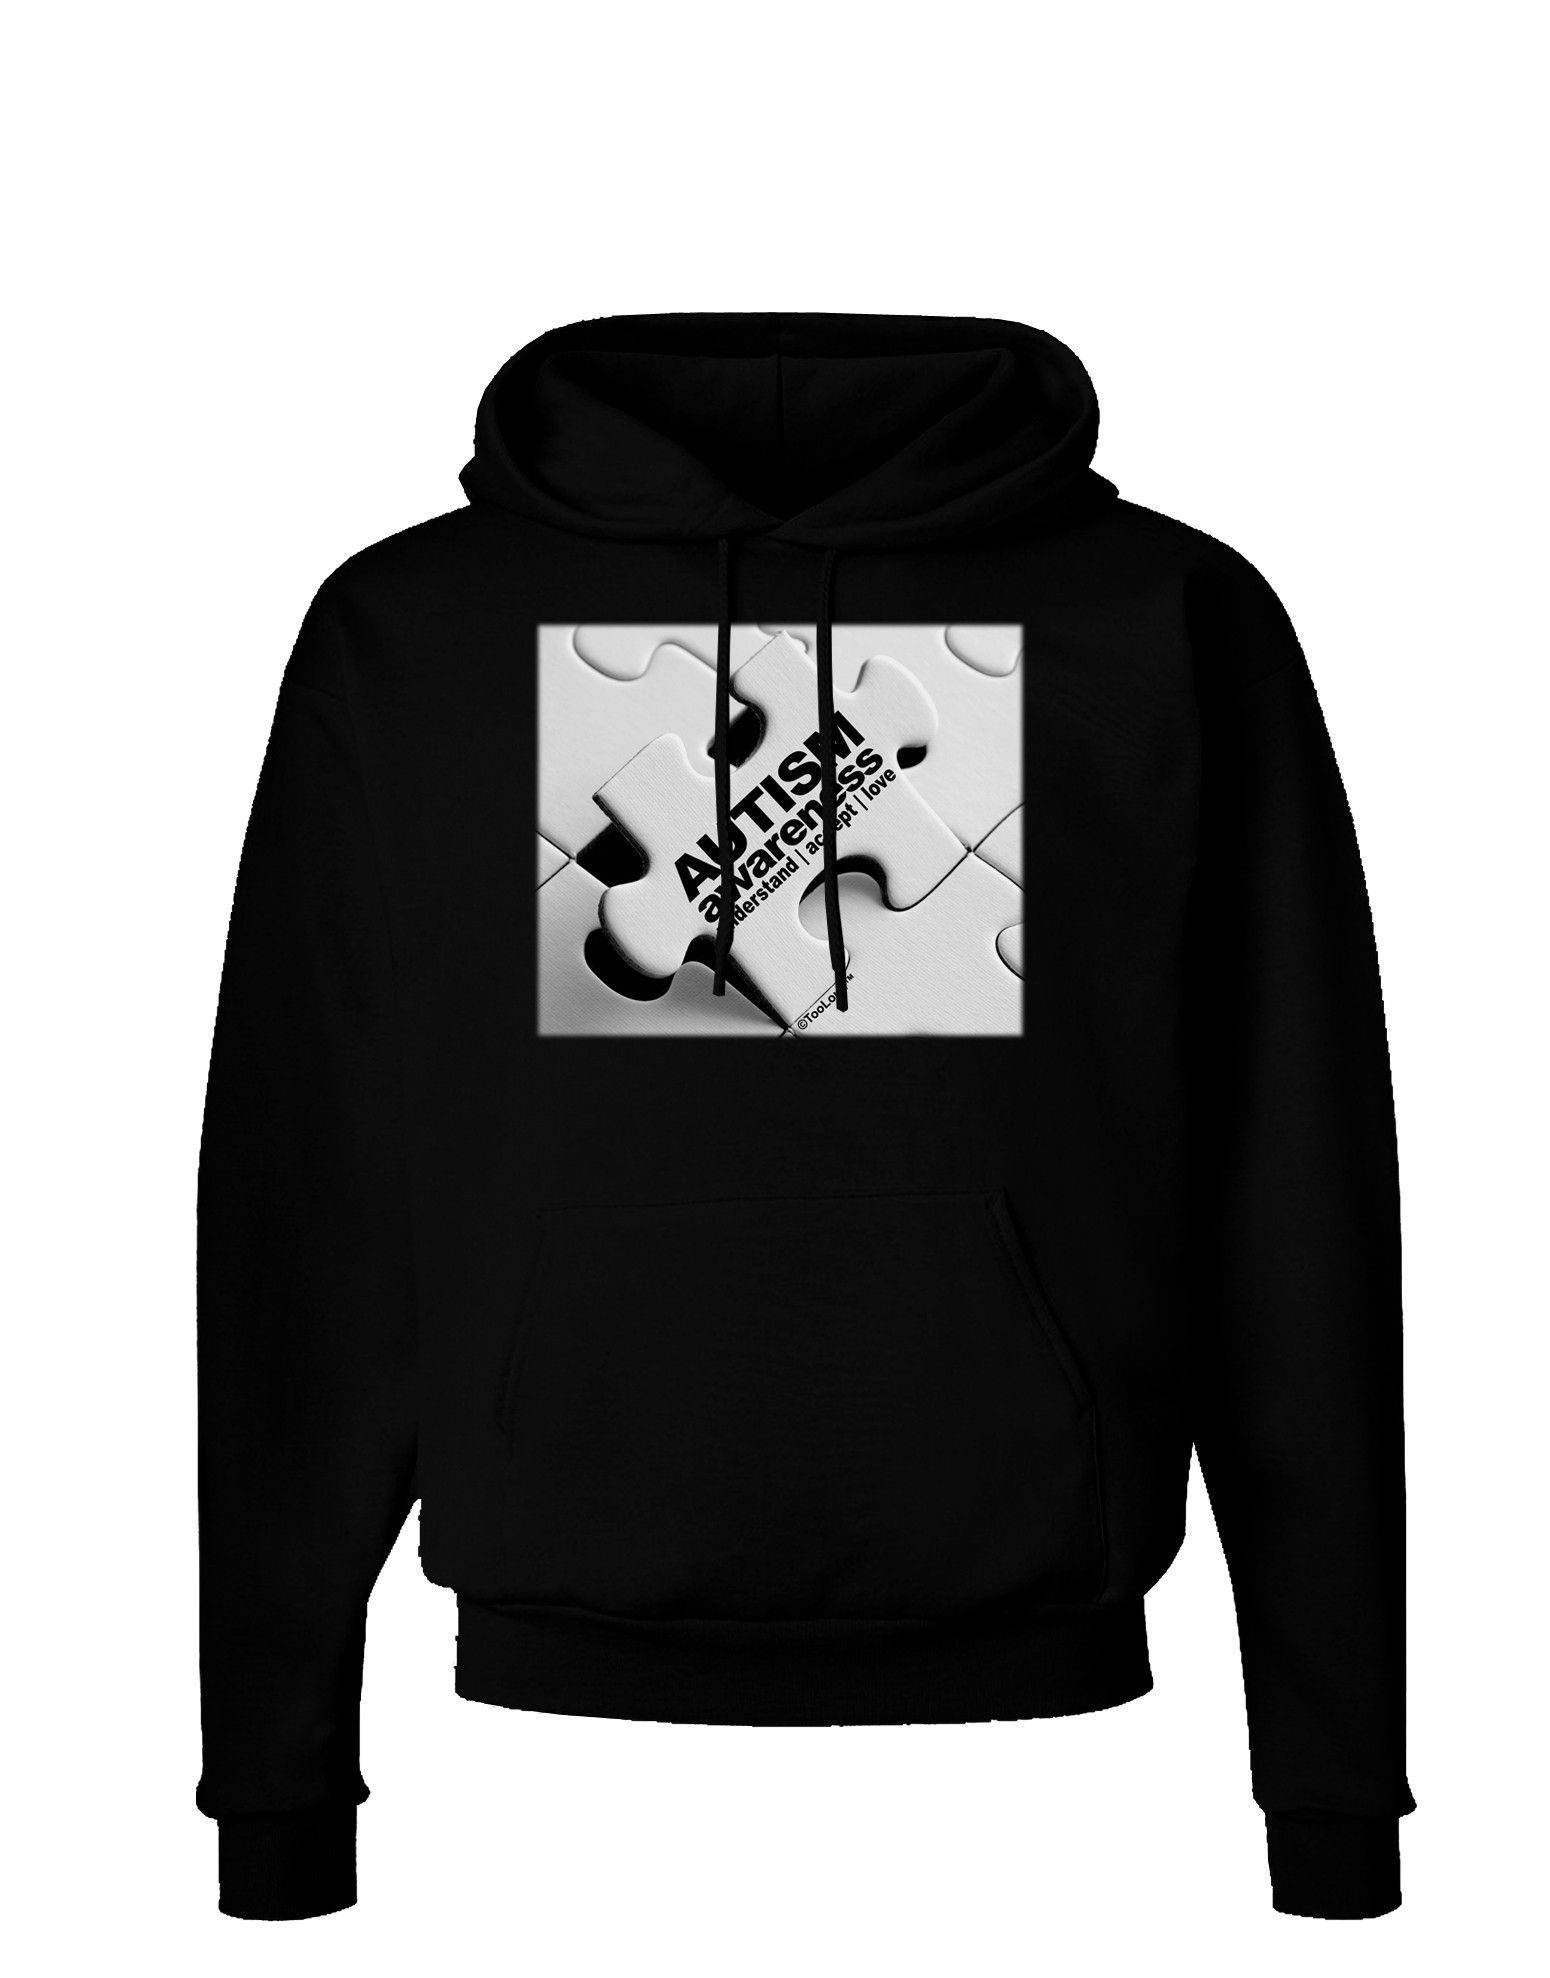 TooLoud Autism Awareness - Puzzle Black & White Dark Hoodie Sweatshirt